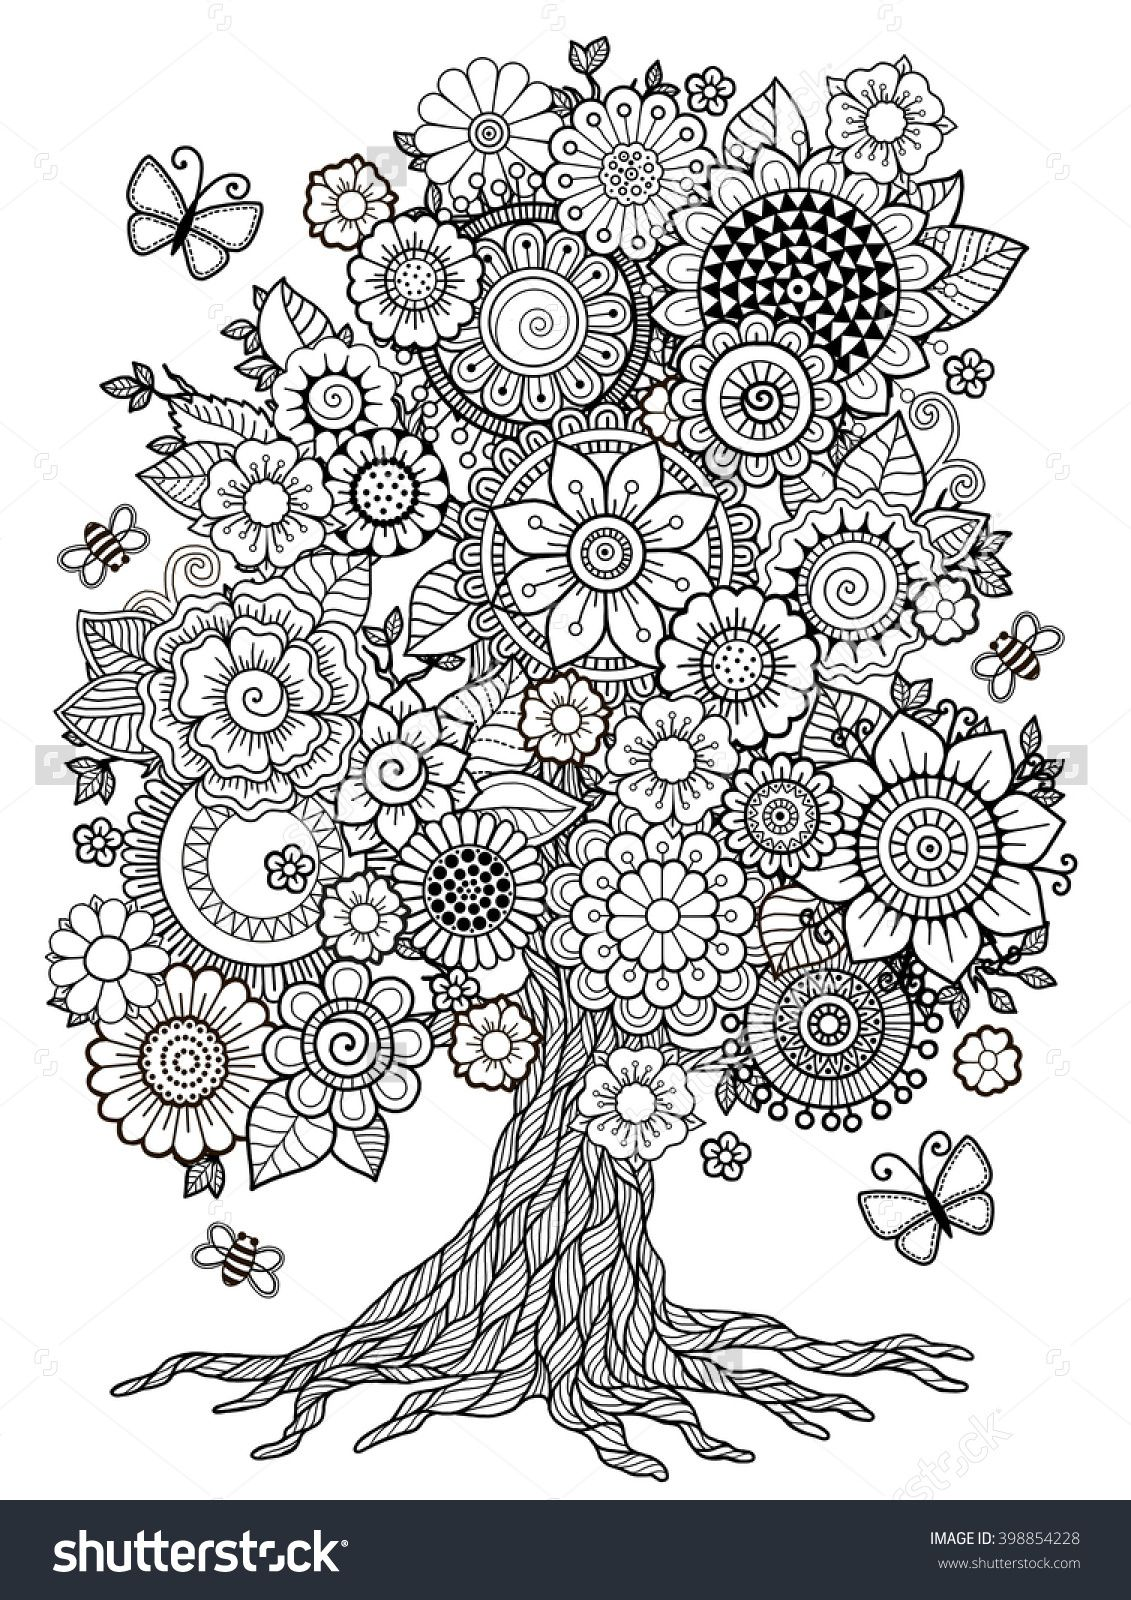 Coloring pages trees and flowers - Blossom Tree Coloring Book For Adult Doodles For Meditation 398854228 Shutterstock